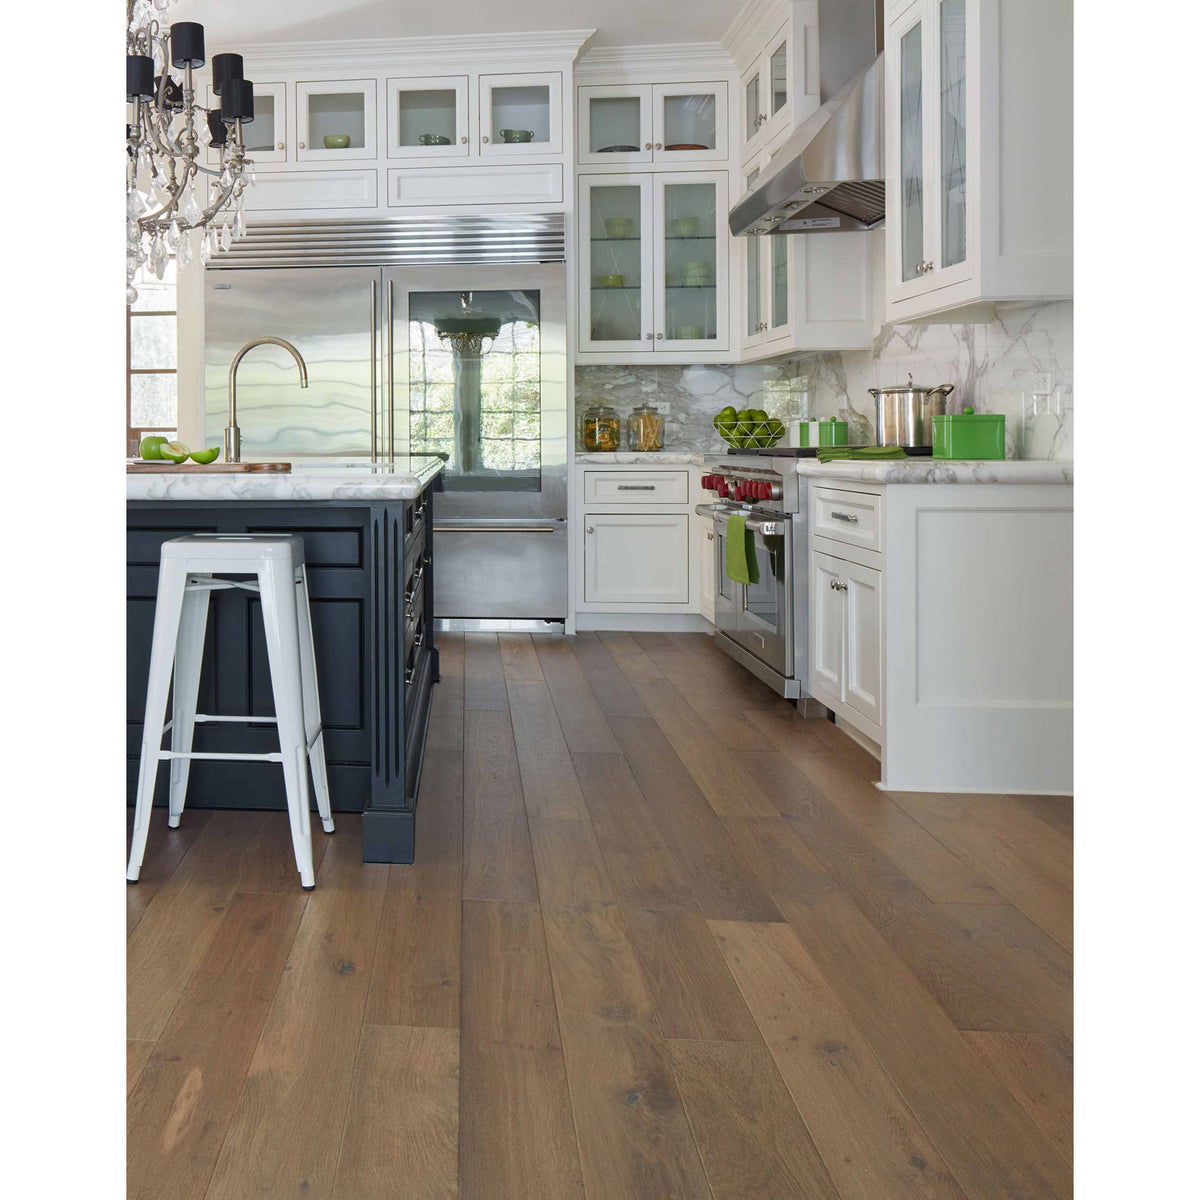 Bella Cera Chambord Maves Hardwood Floors